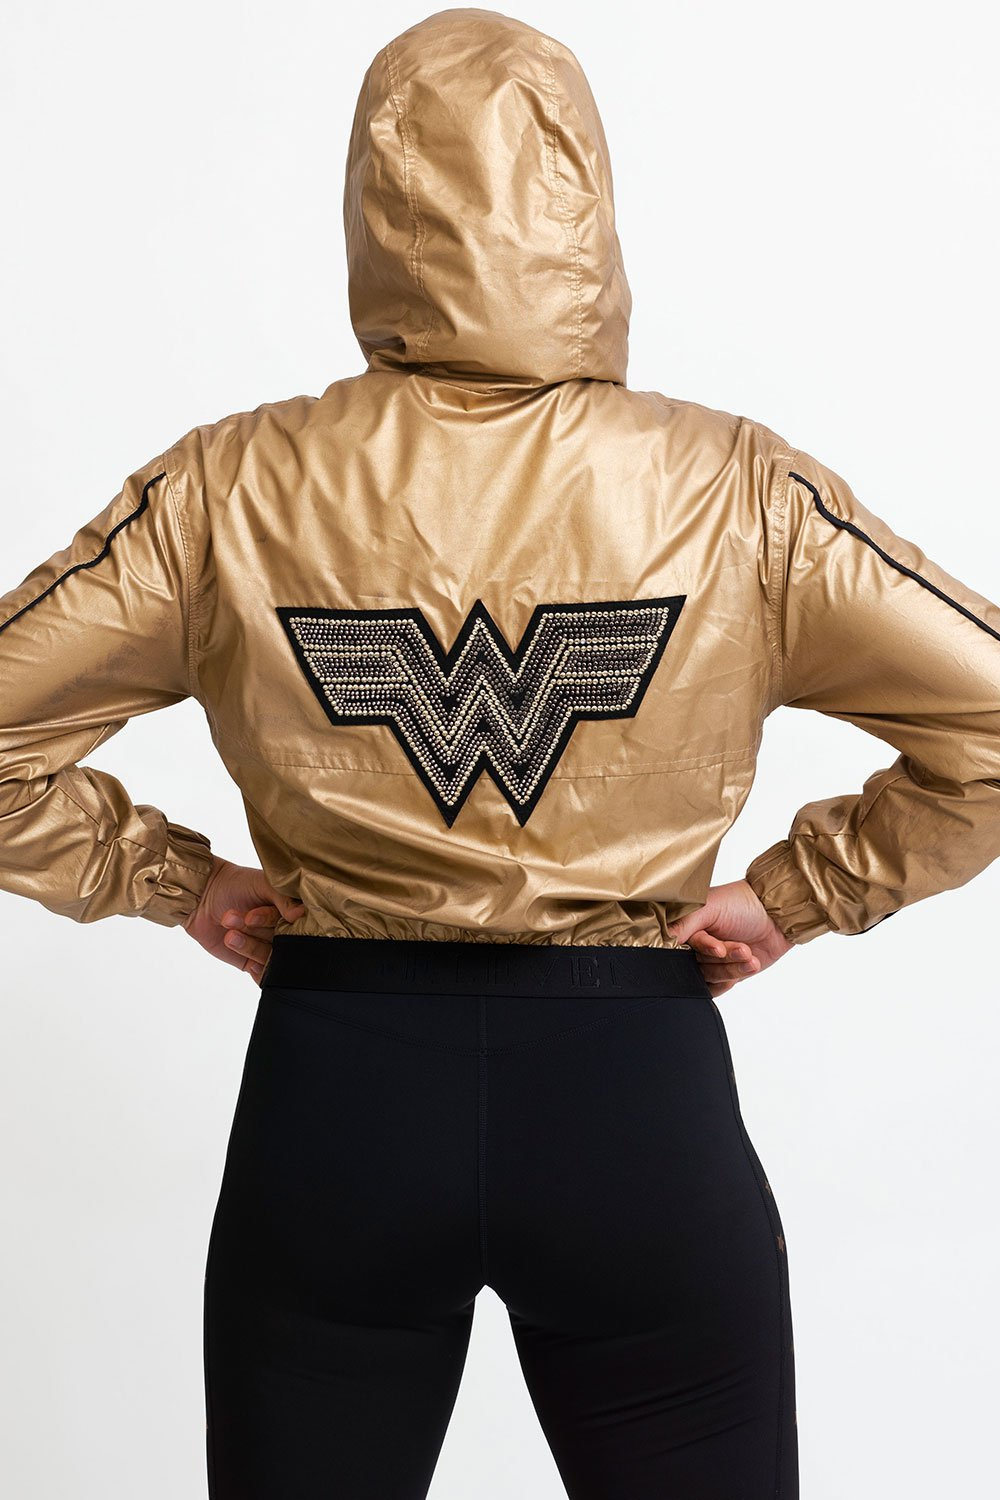 DC FanDome Store offers merch based on Wonder Woman, Black DC superheroes, & more 21